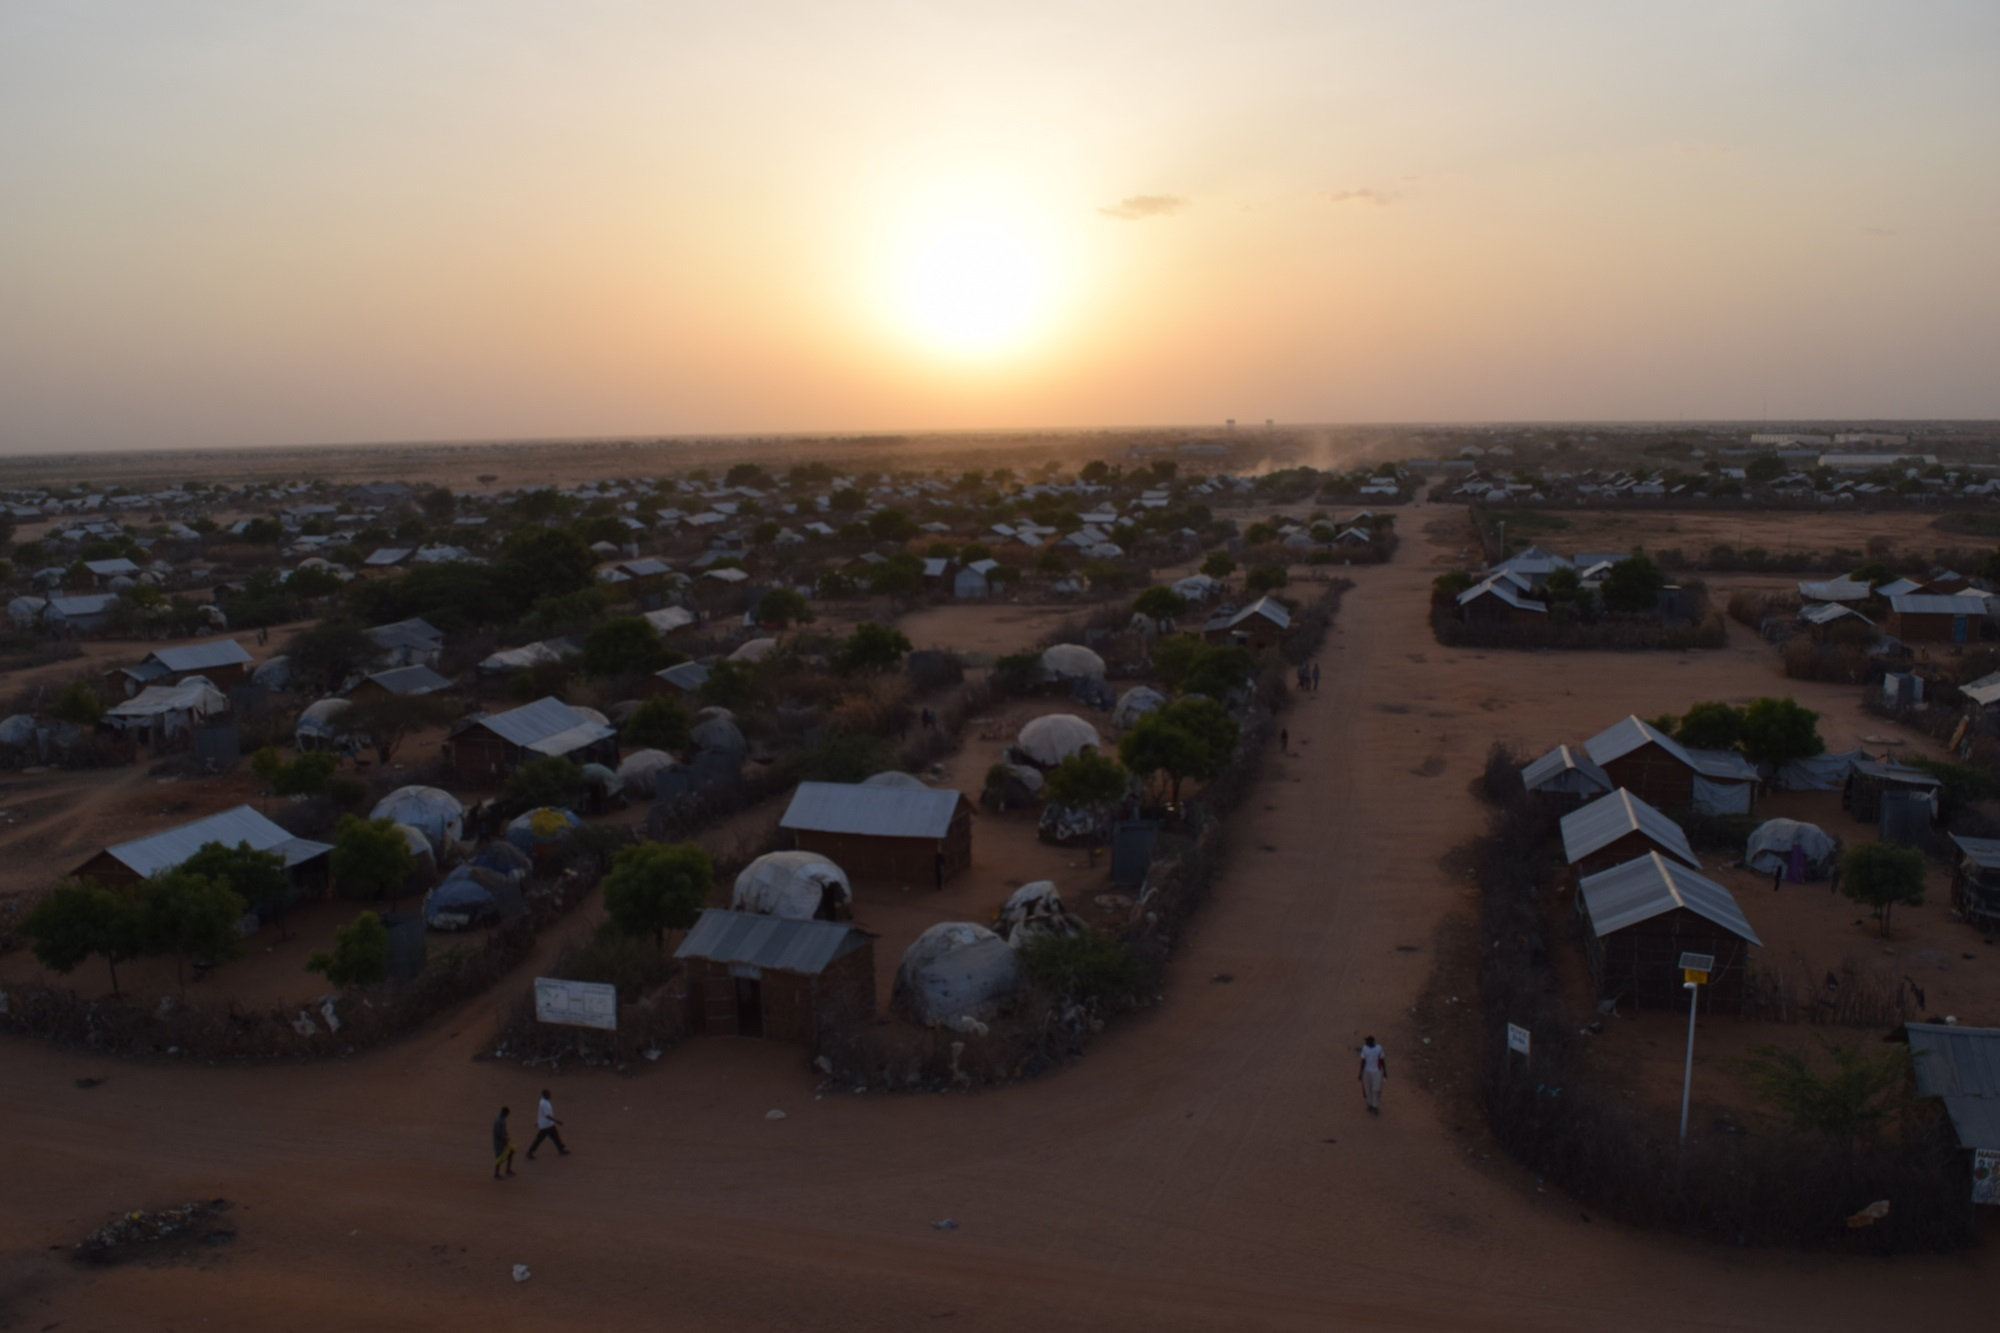 Dadaab refugee camp at sunset